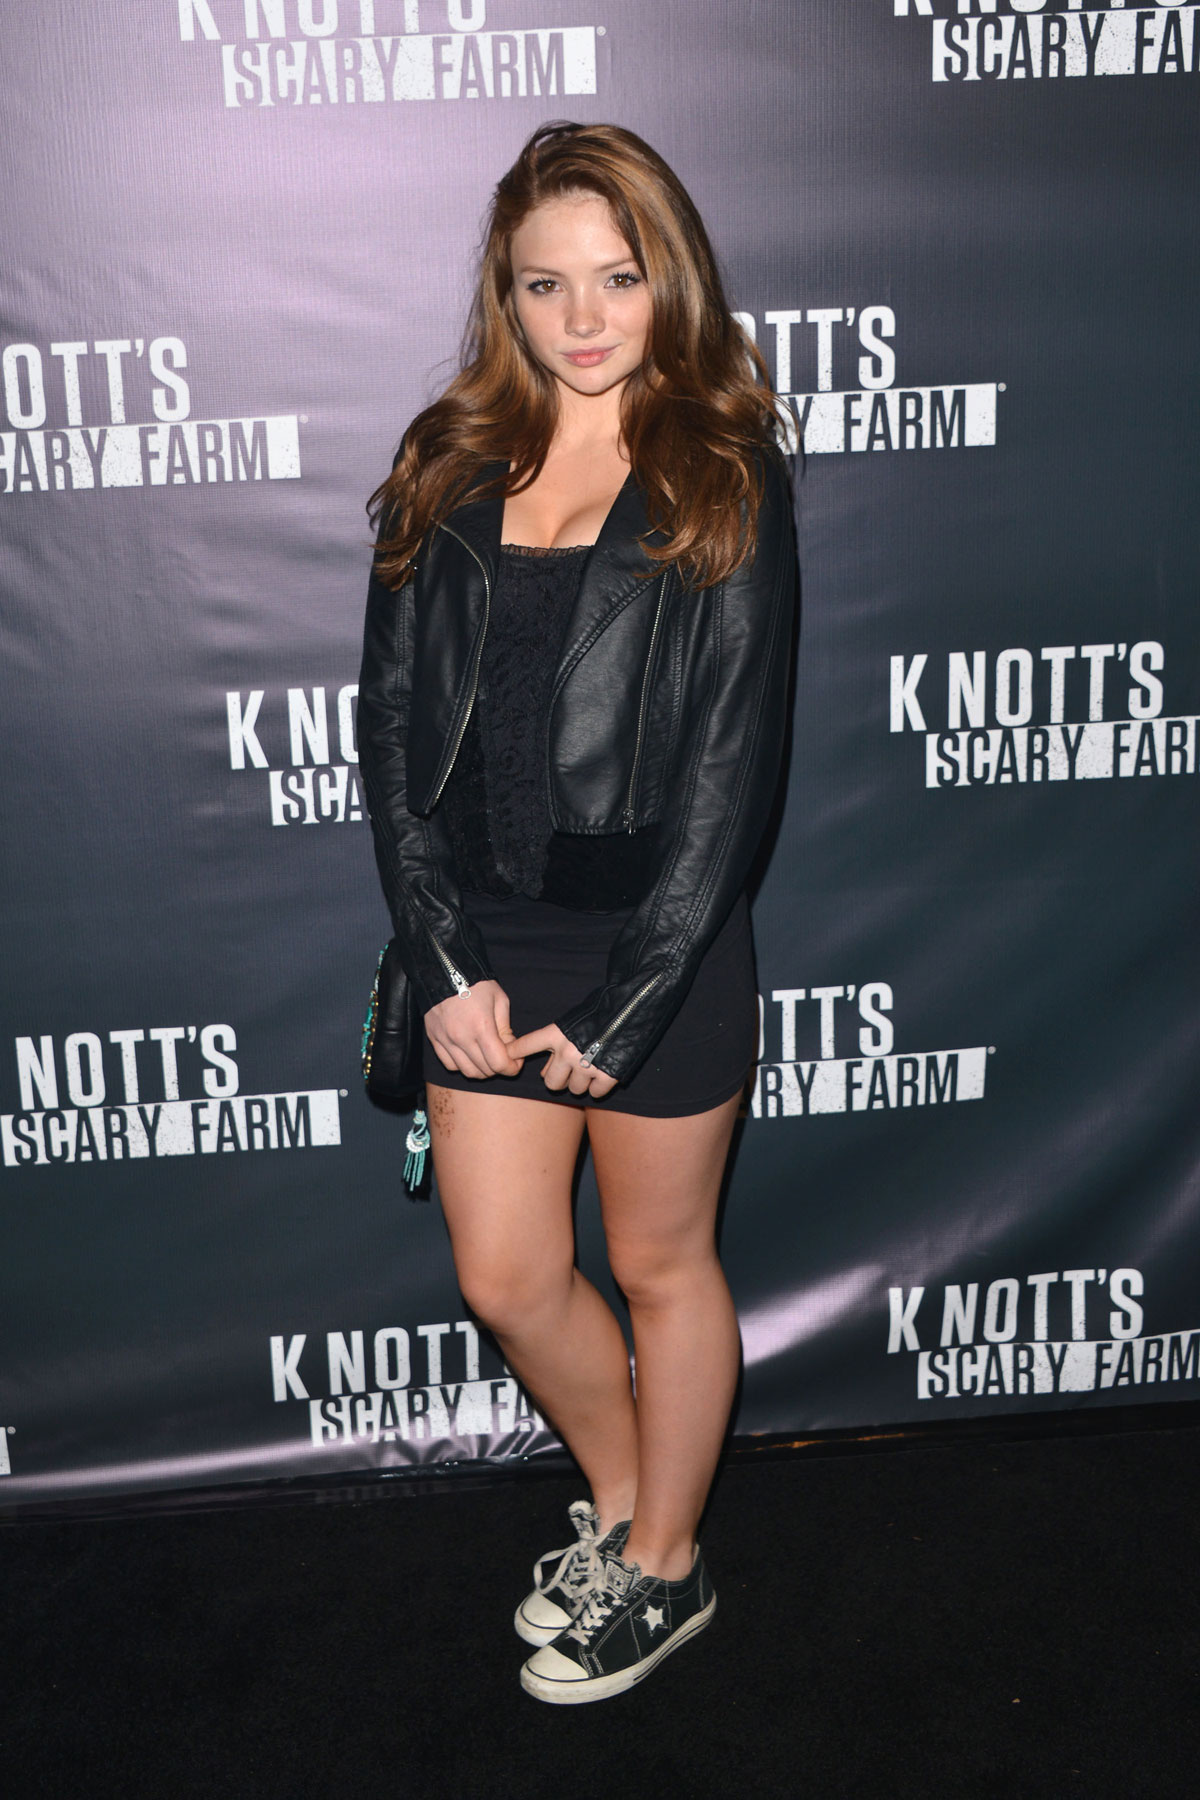 Natalie Alyn attends Lind Knotts Scary Farm Opening